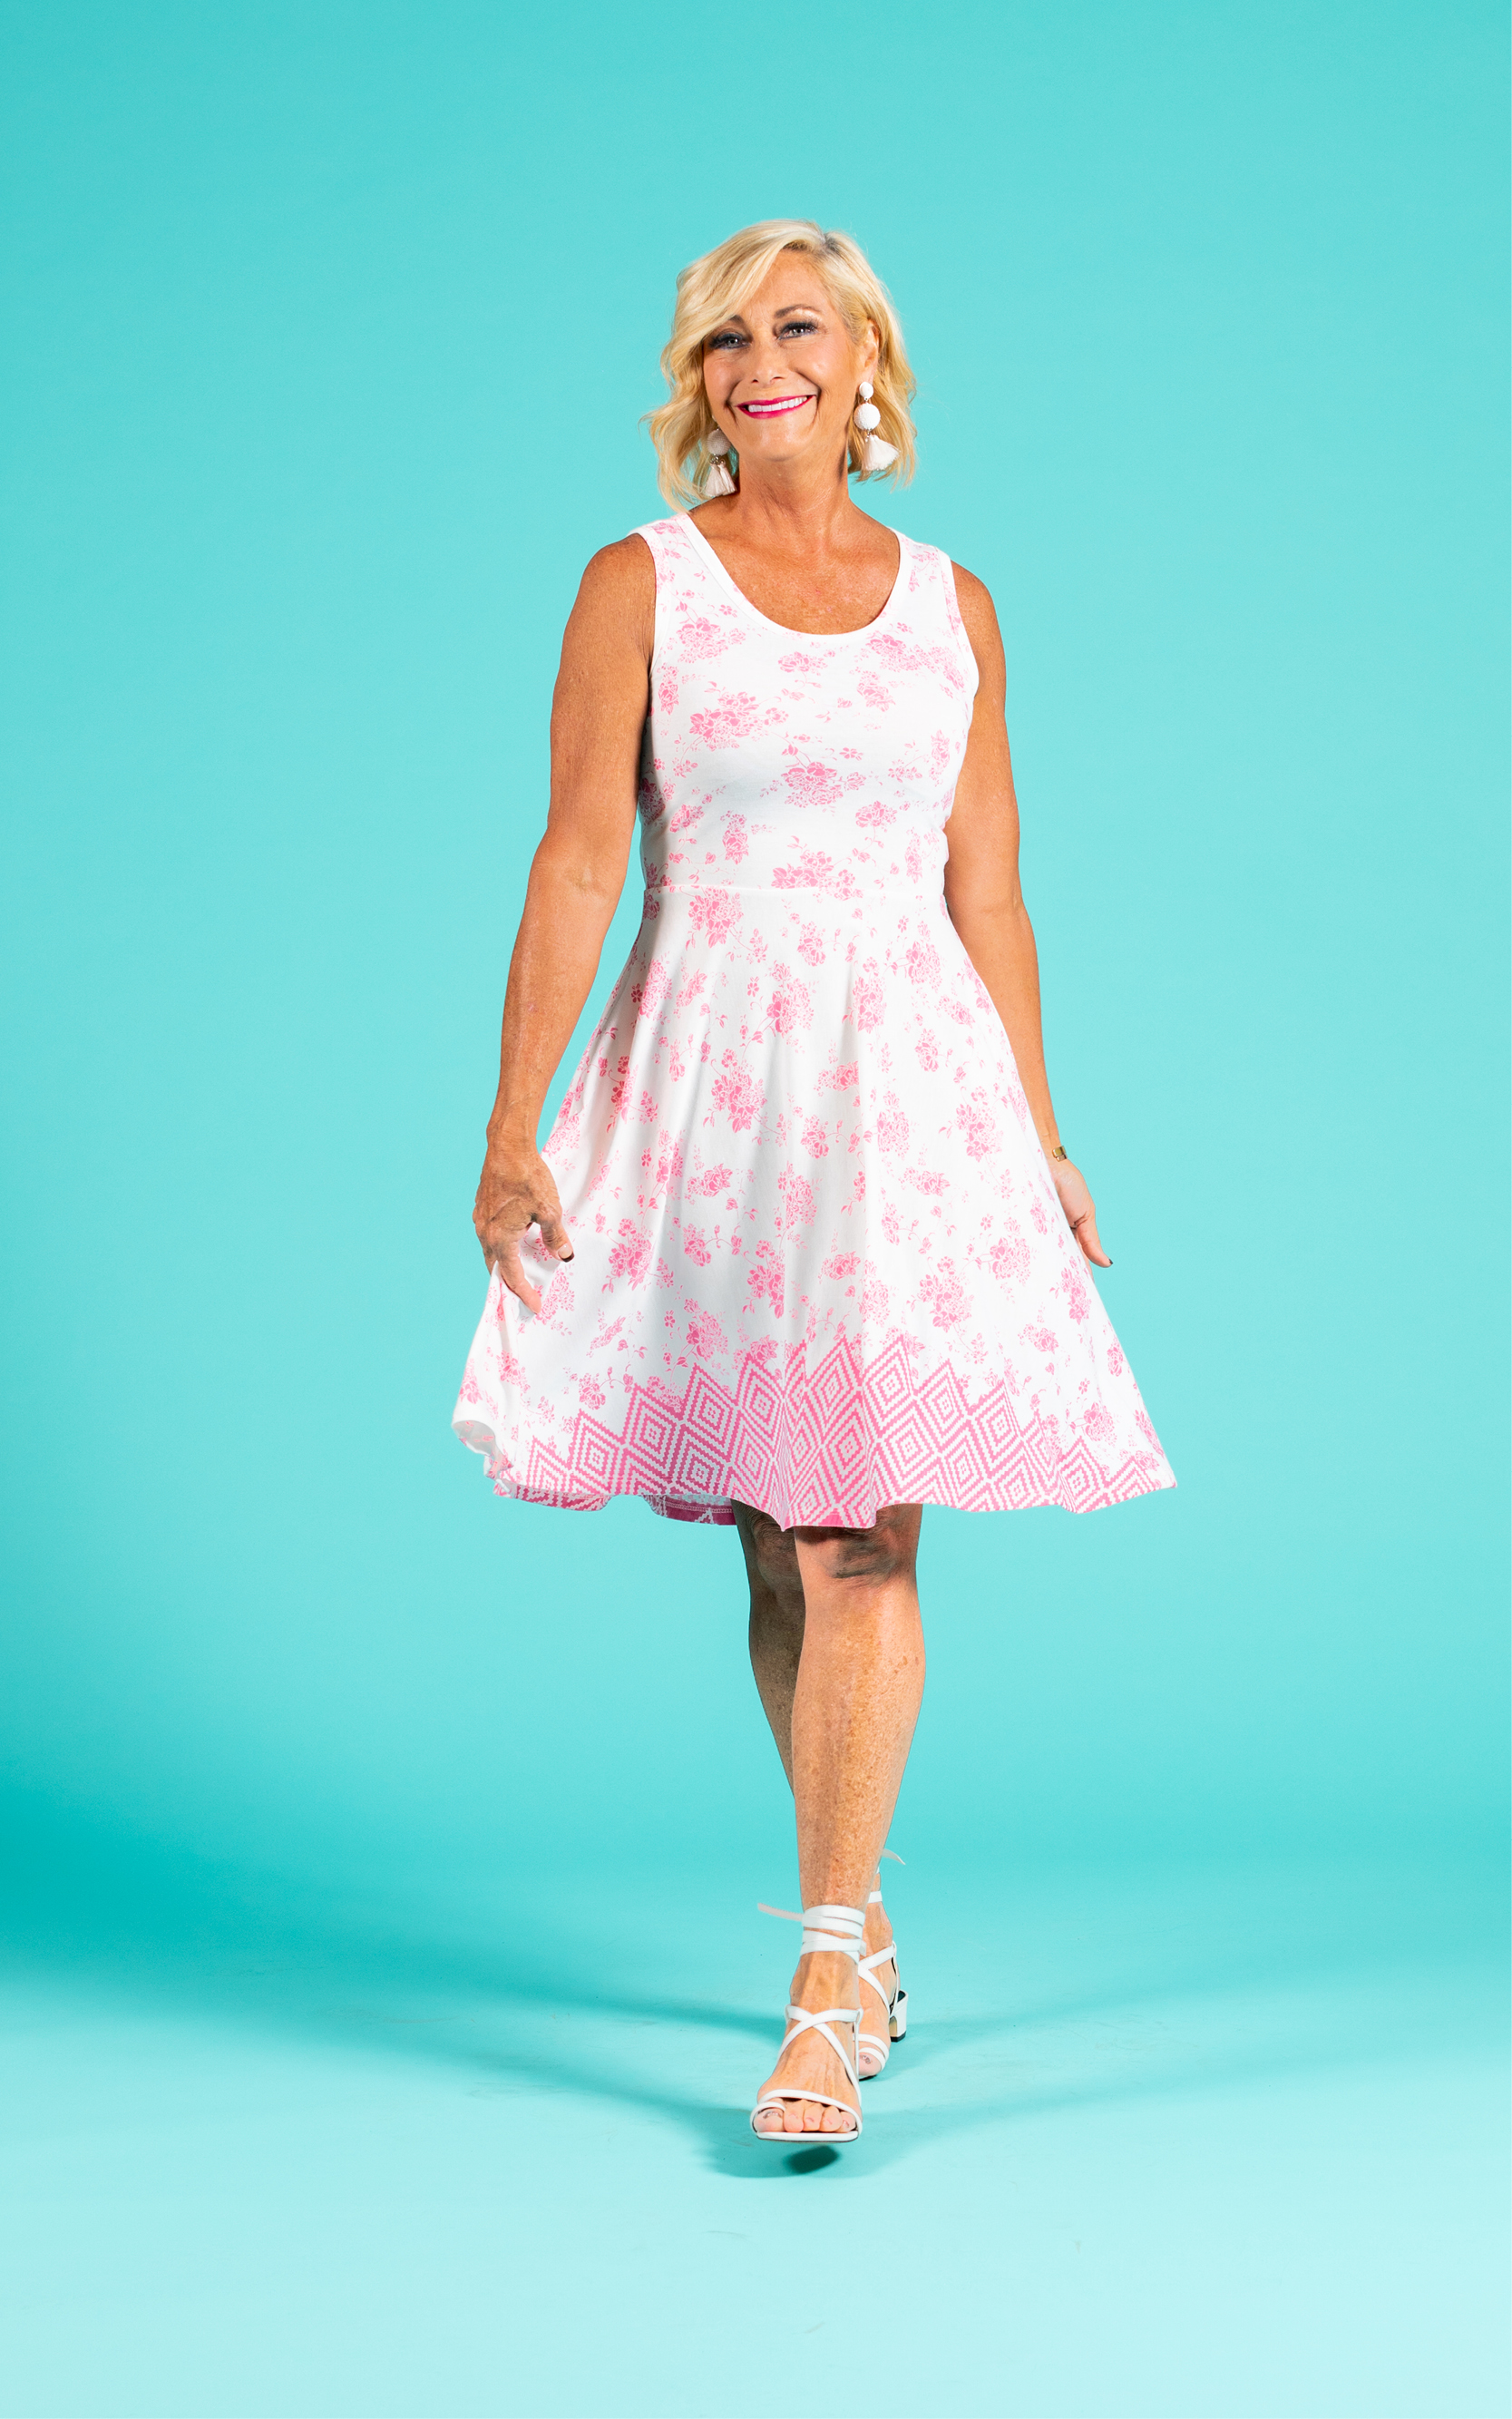 LULAROE-SLEEVELESS-DRESS-NICKI-A LINE SKIRT-WHITE PINK PATTERN.jpg